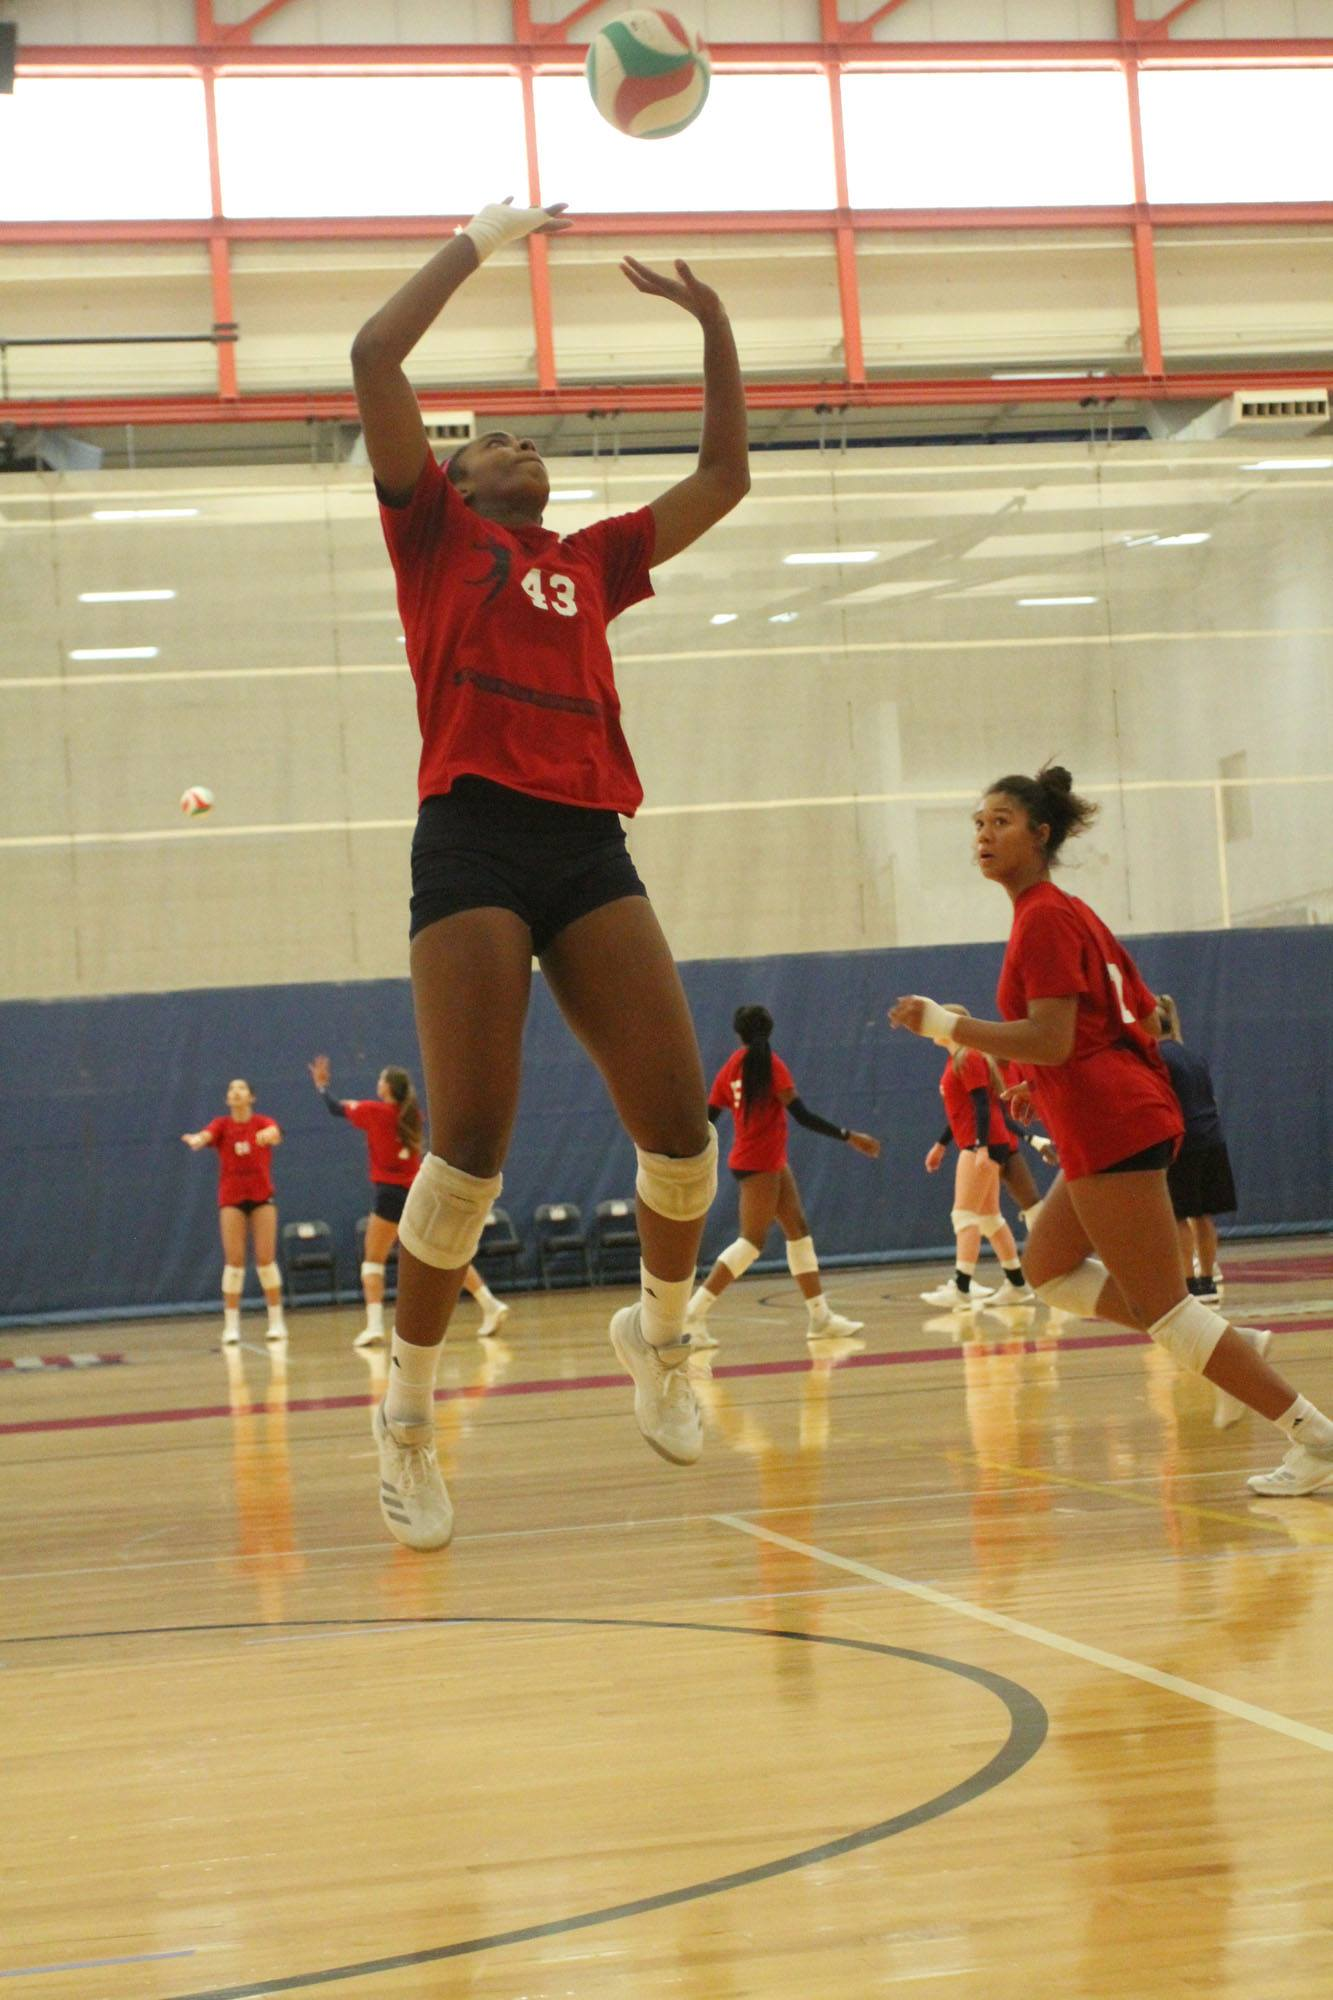 15 y/o Kami Miner named to 2018 US Girls Youth National Team after three years in the USAHPC pipeline. Trained and played 3 years with Coach April and was a three-year Volleycats Elite VBC member.